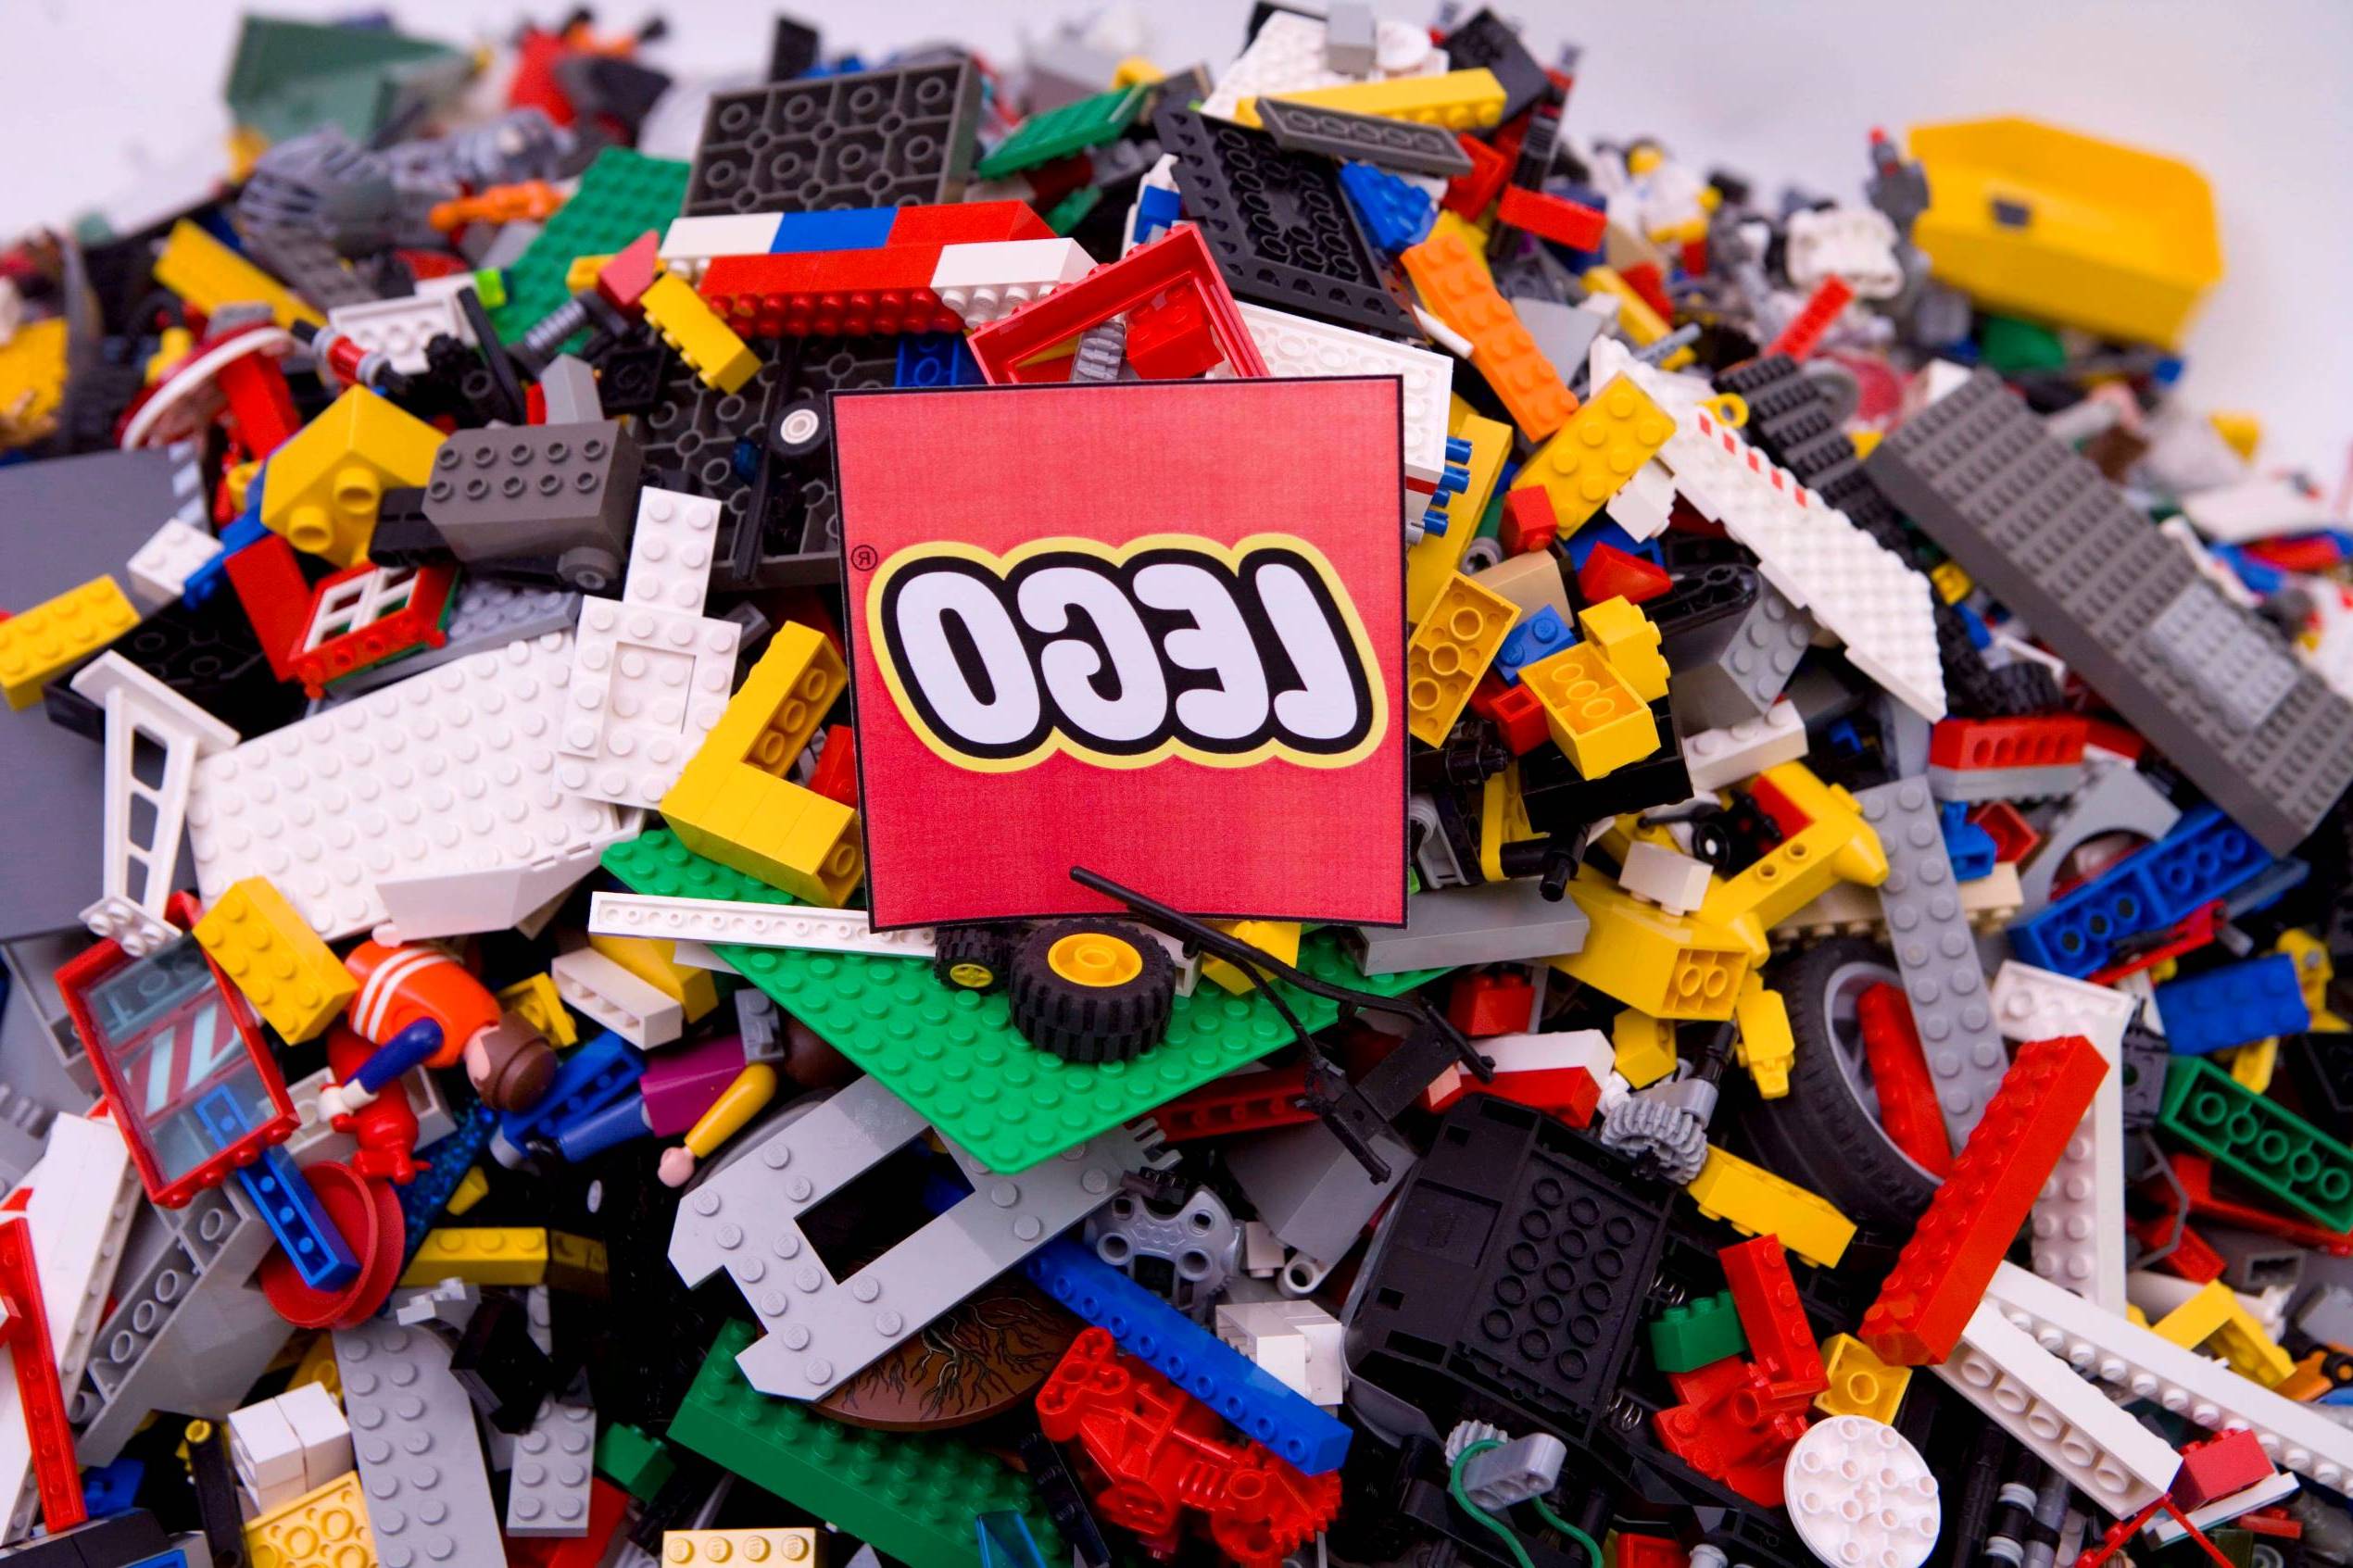 20% off LEGO! Myer's big toy sale is on now.